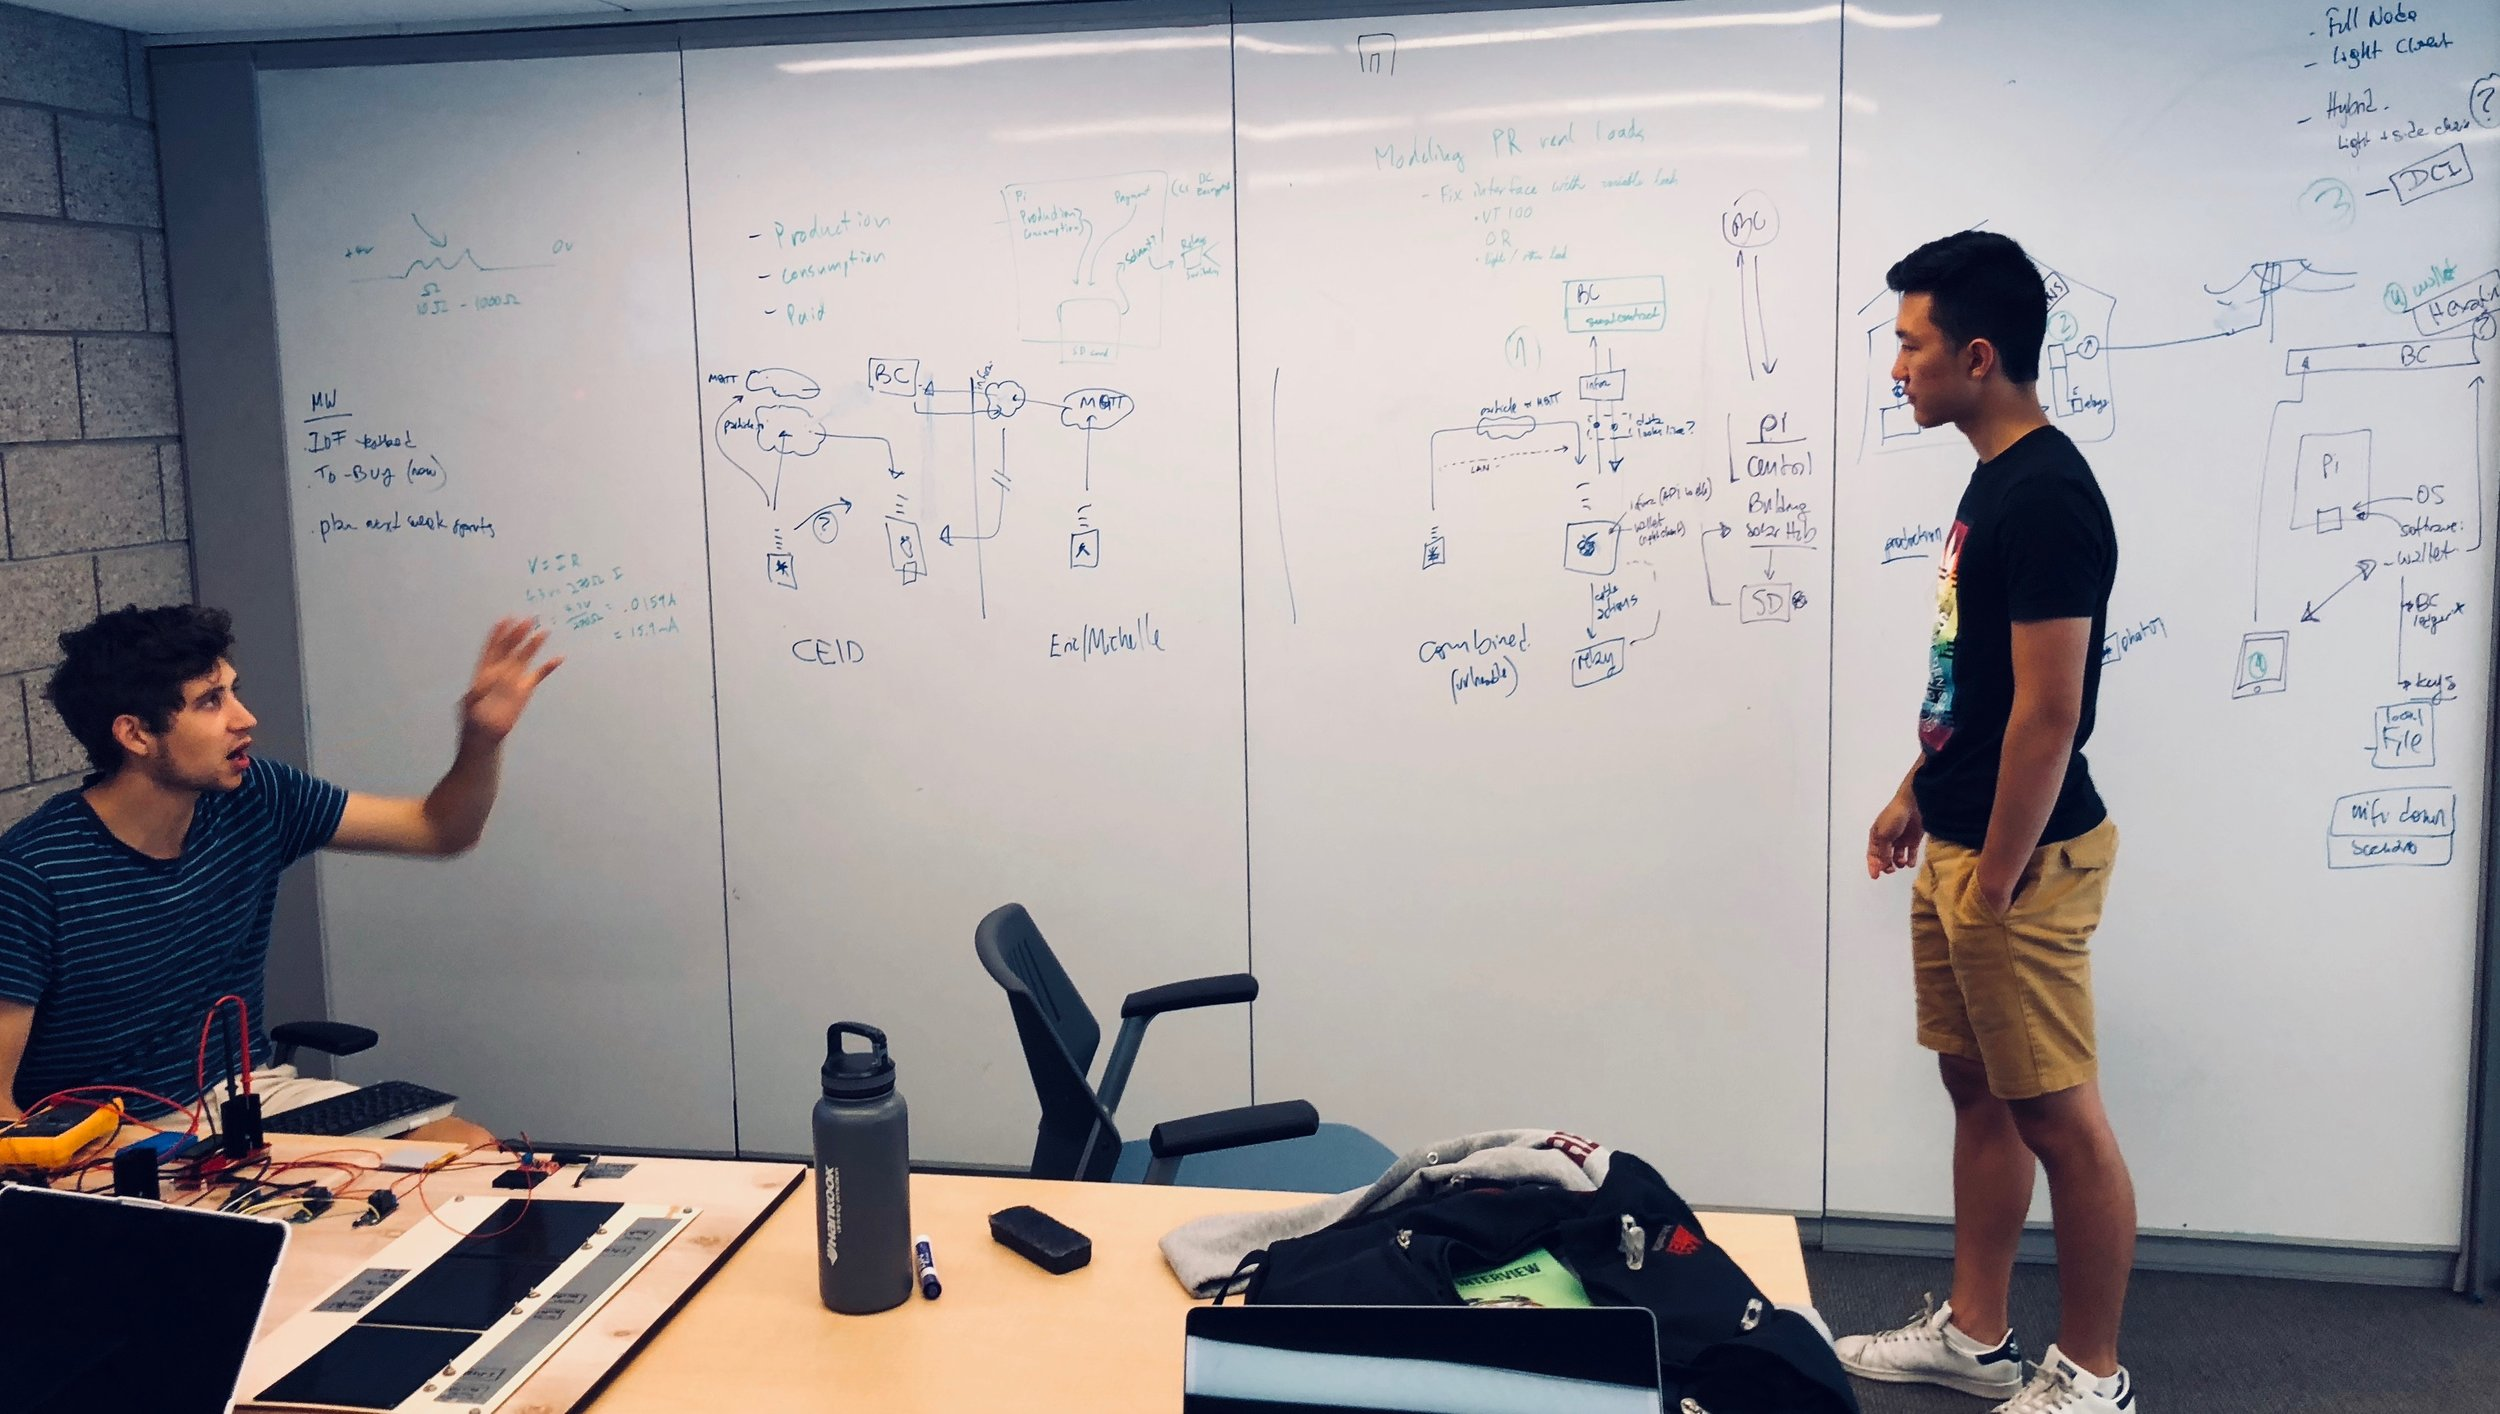 Students Jonathan Simmonds (hardware lead) and Eric Duong (software lead) discuss a prototype to deploy community solar microgrids in Puerto Rico. (At Yale CEID)